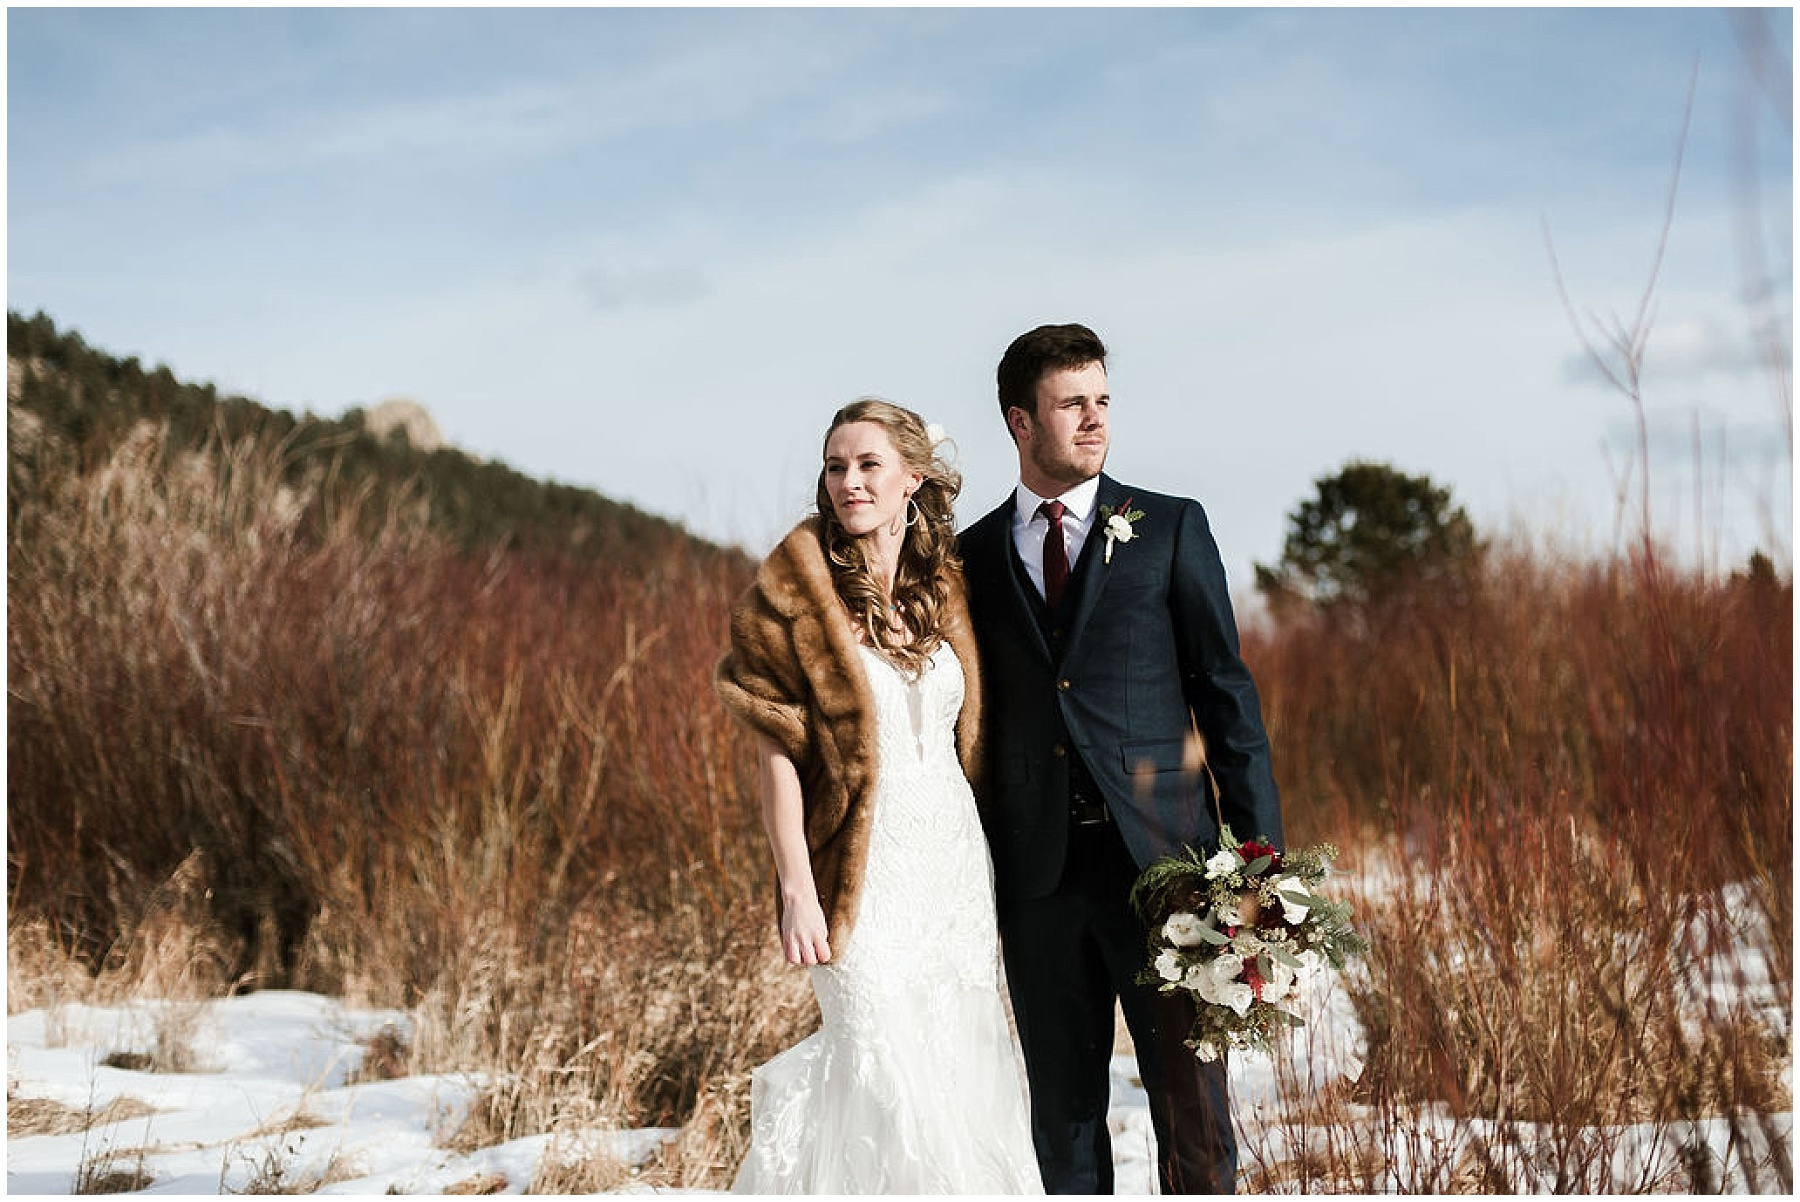 Katesalleyphotography-166_Haley and Dan get married in Estes Park.jpg